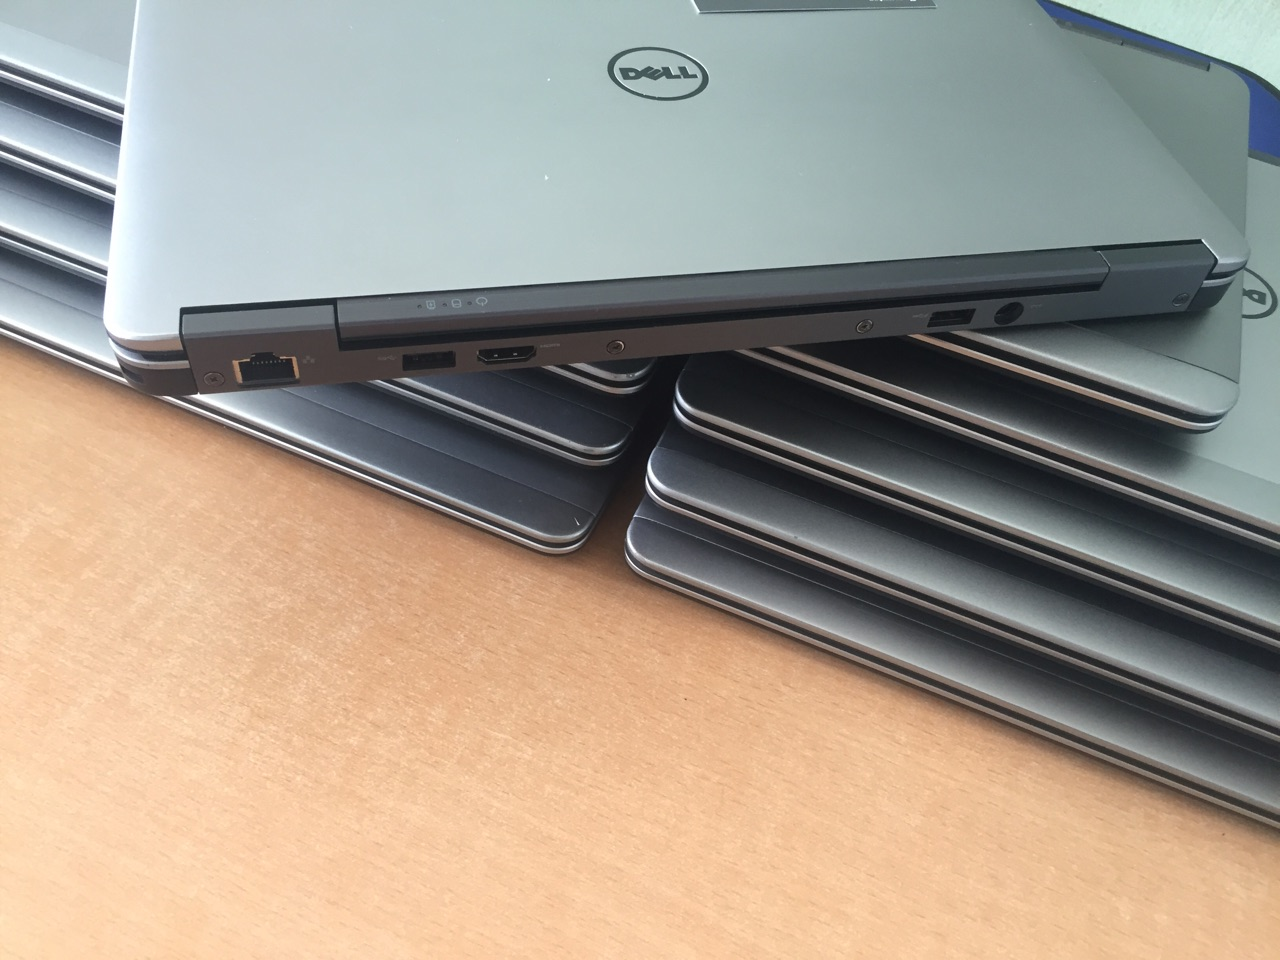 Laptop Cũ Dell Latitude E7240-I7-4300/4g/SSD128G